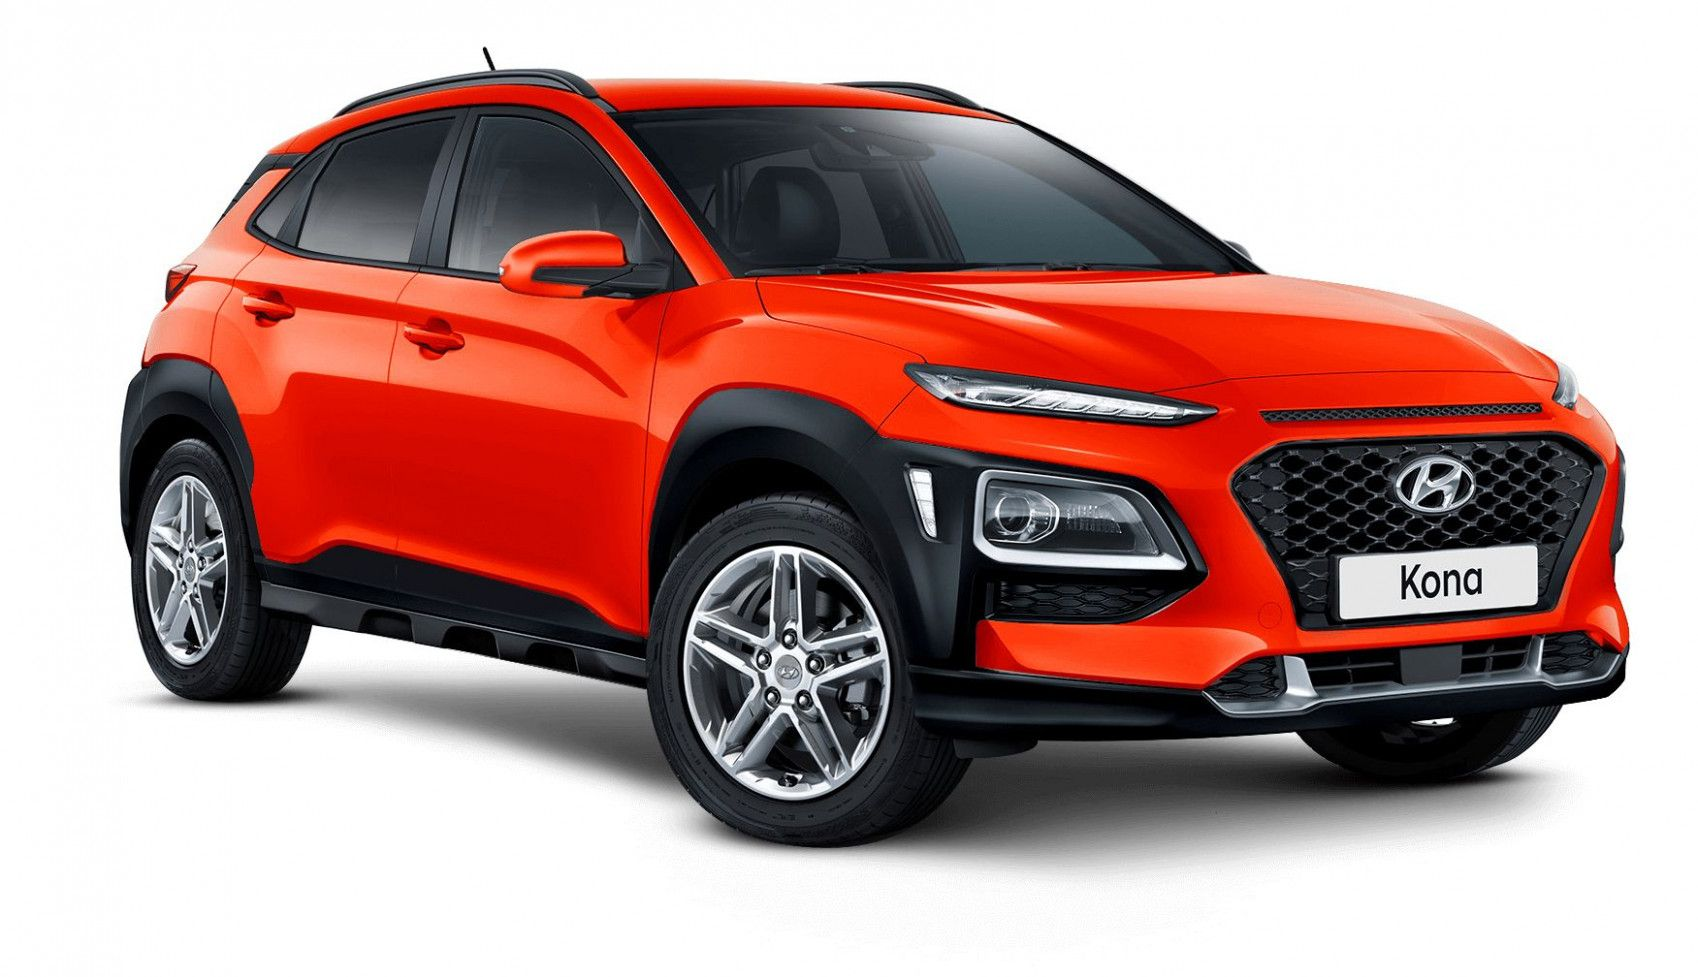 9 Image Hyundai Kona 2020 Price Philippines In 2020 Hyundai Sporty Suv Kona